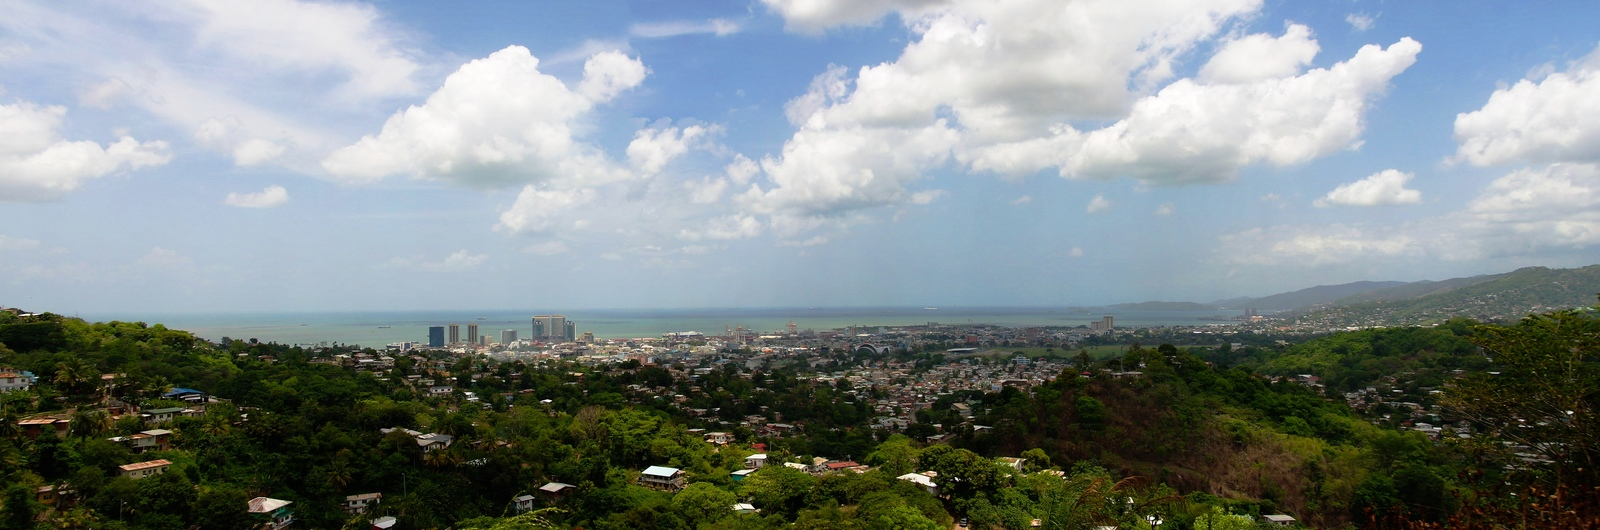 port of spain city header